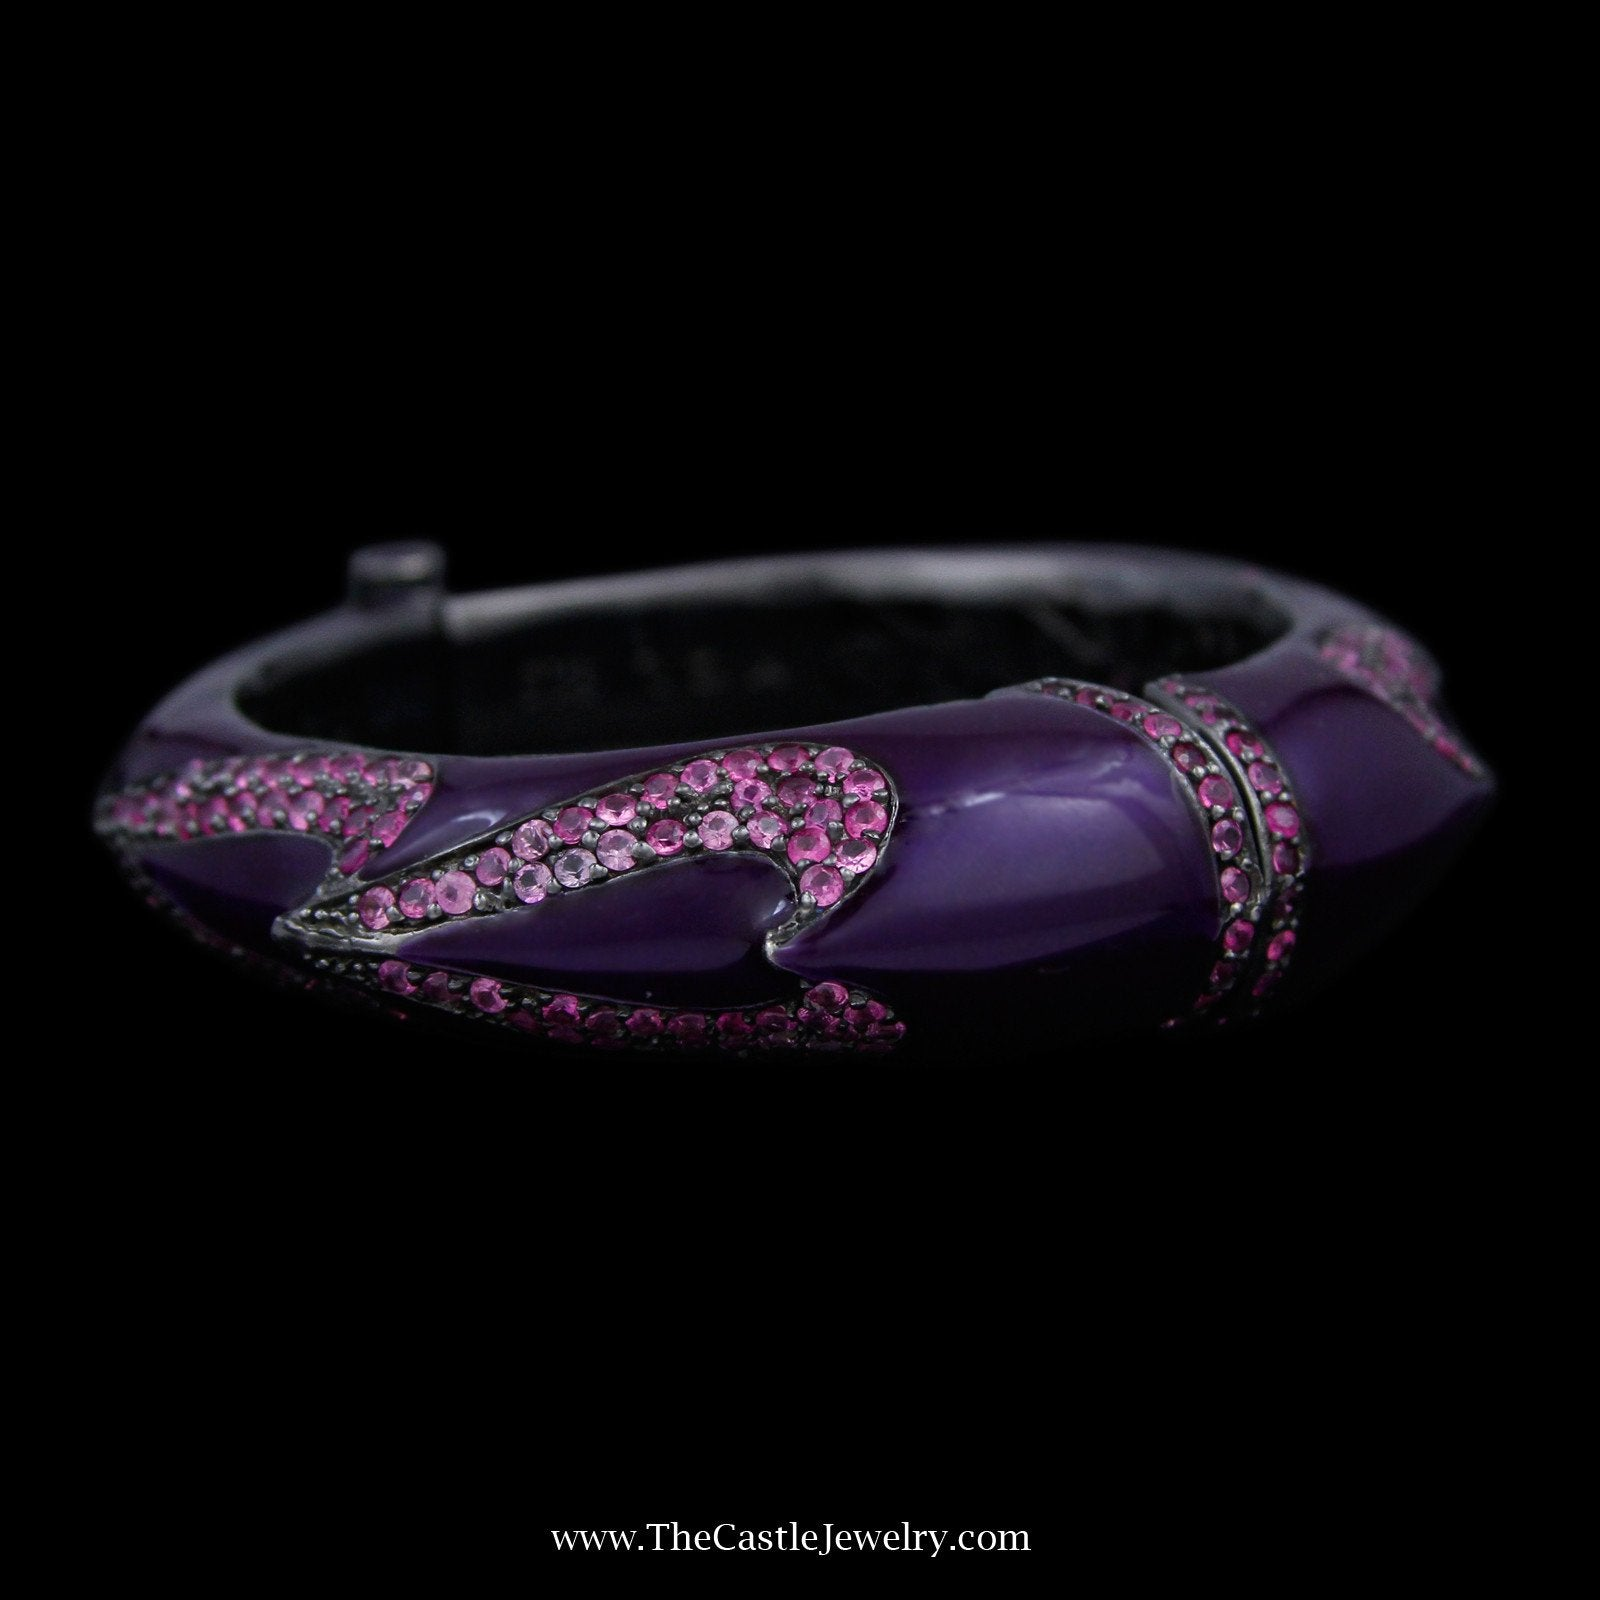 Matthew Campbell Laurenza Bangle Bracelet w/ Purple Enamel & Pink Colored Gemstones Sterling Silver-1